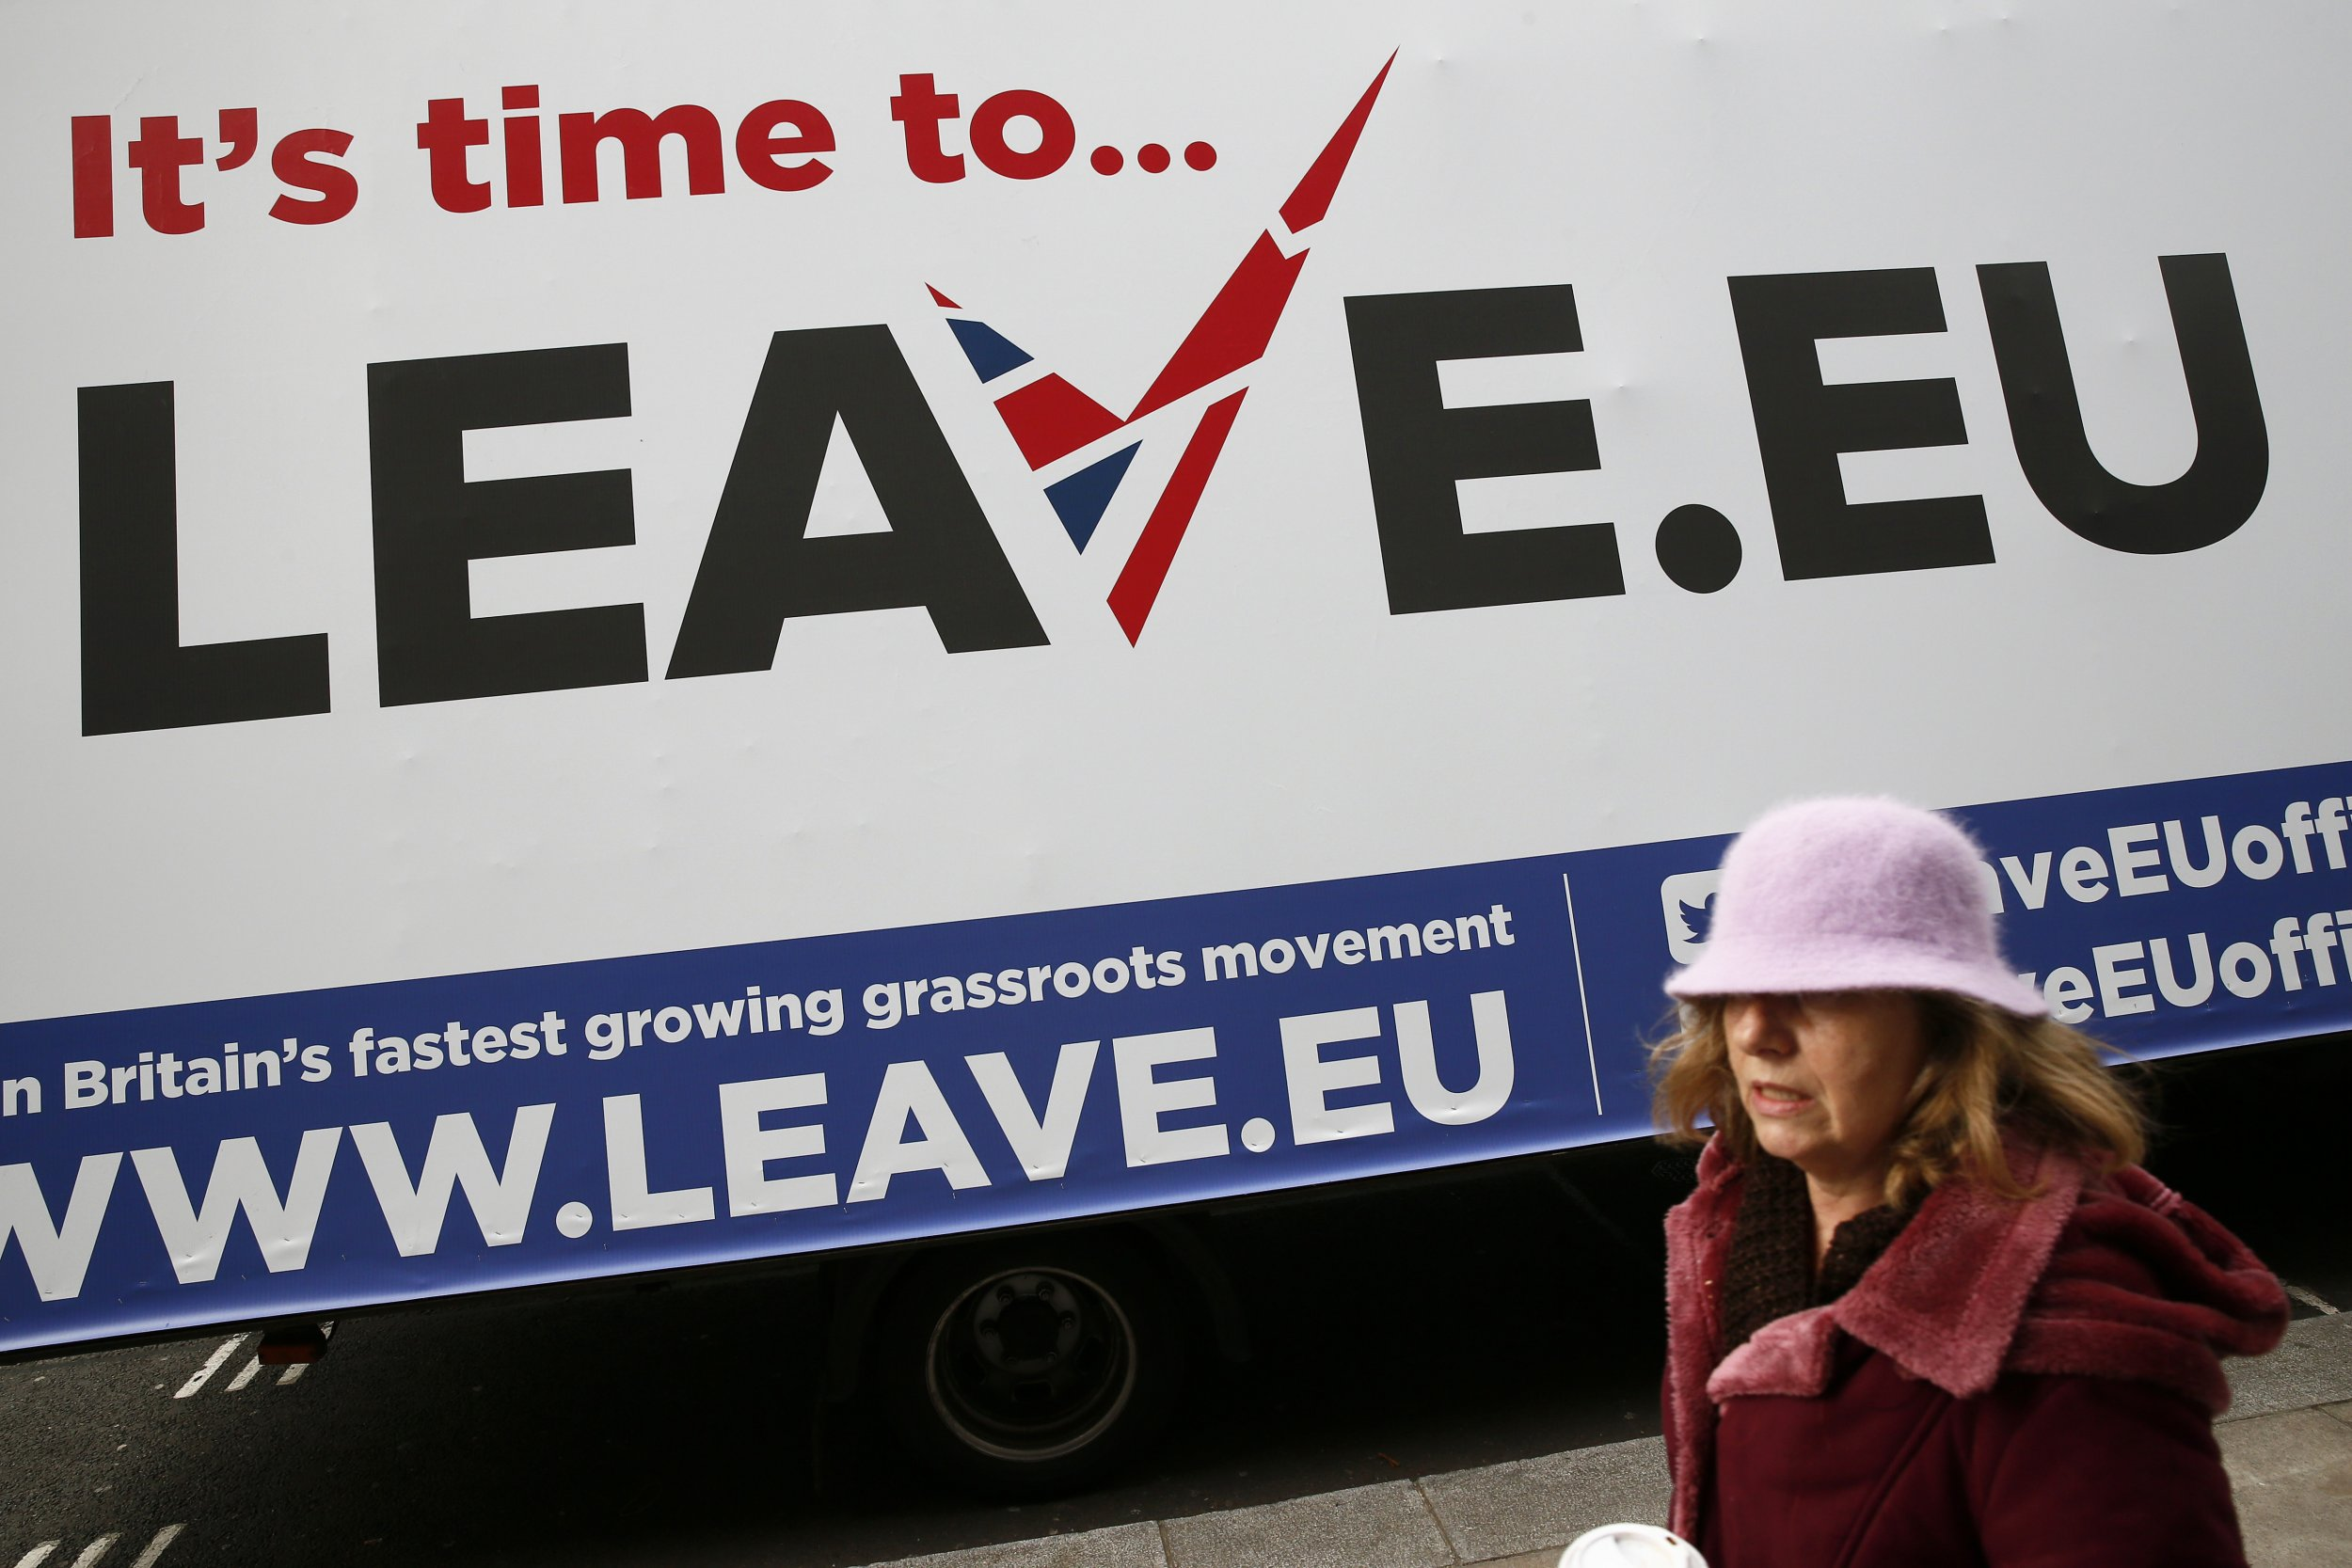 Leave.EU Poster